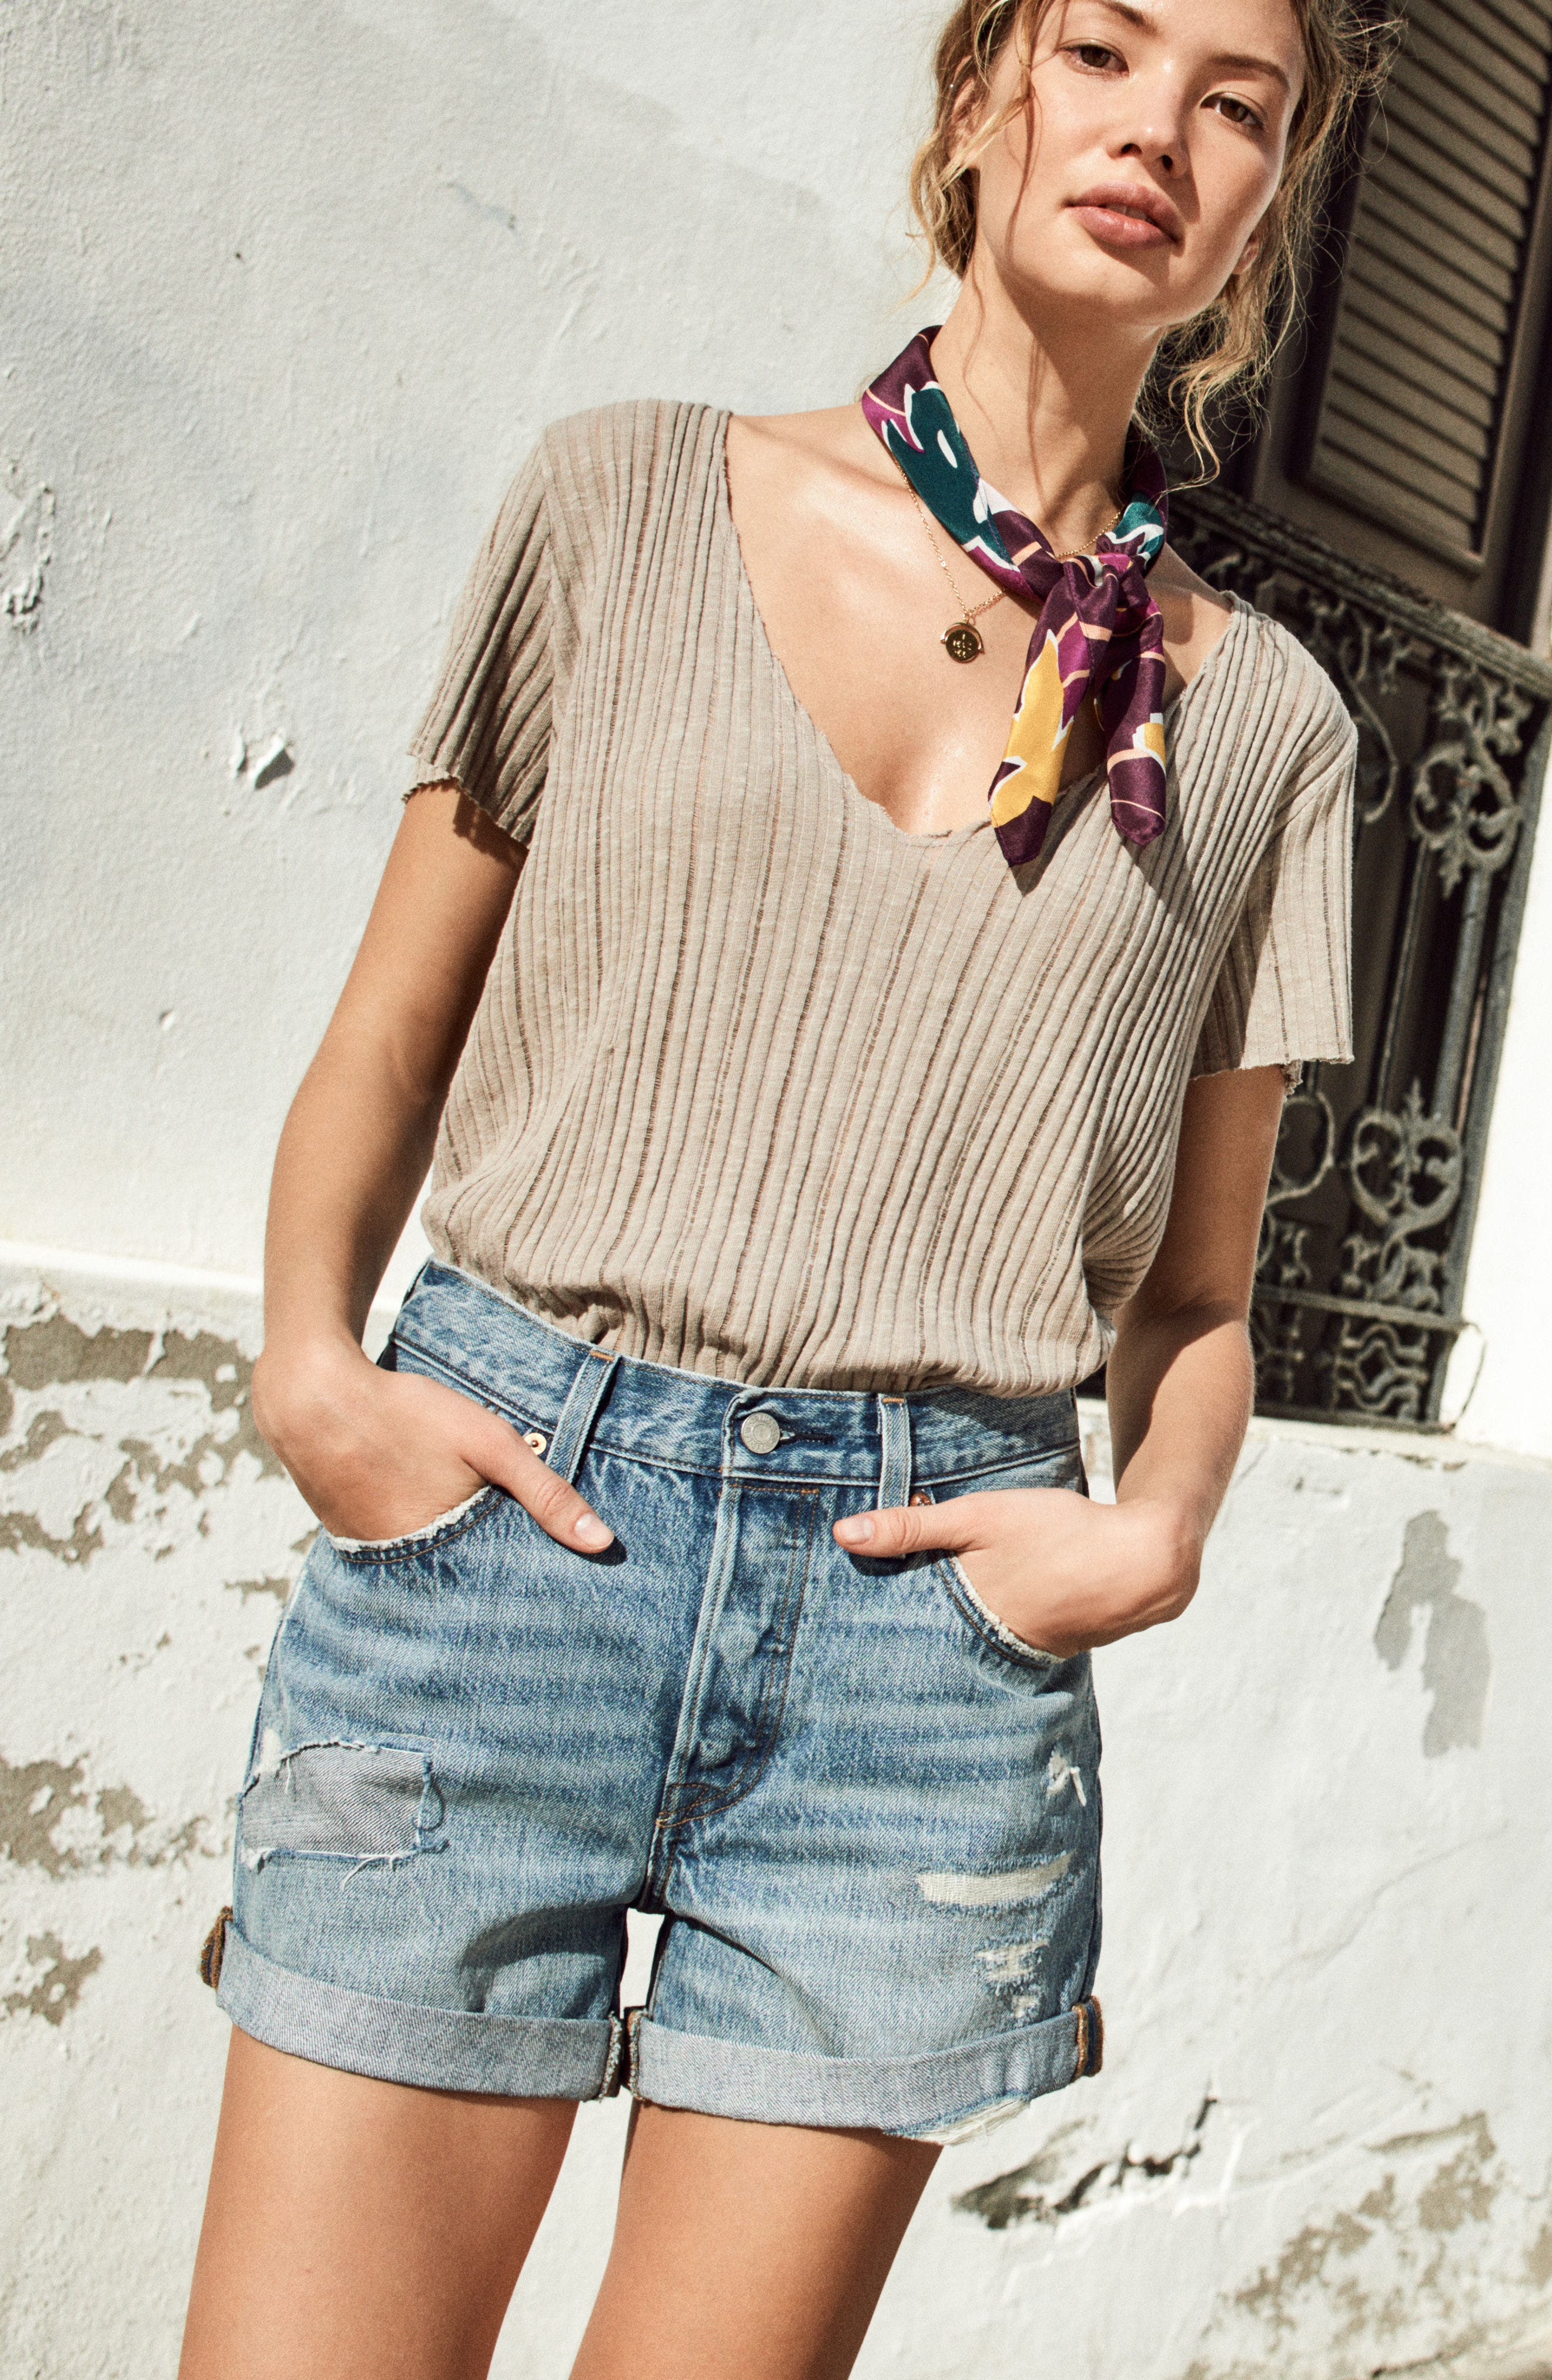 Project Social T Tee & Levi's® Shorts Outfit with Accessories